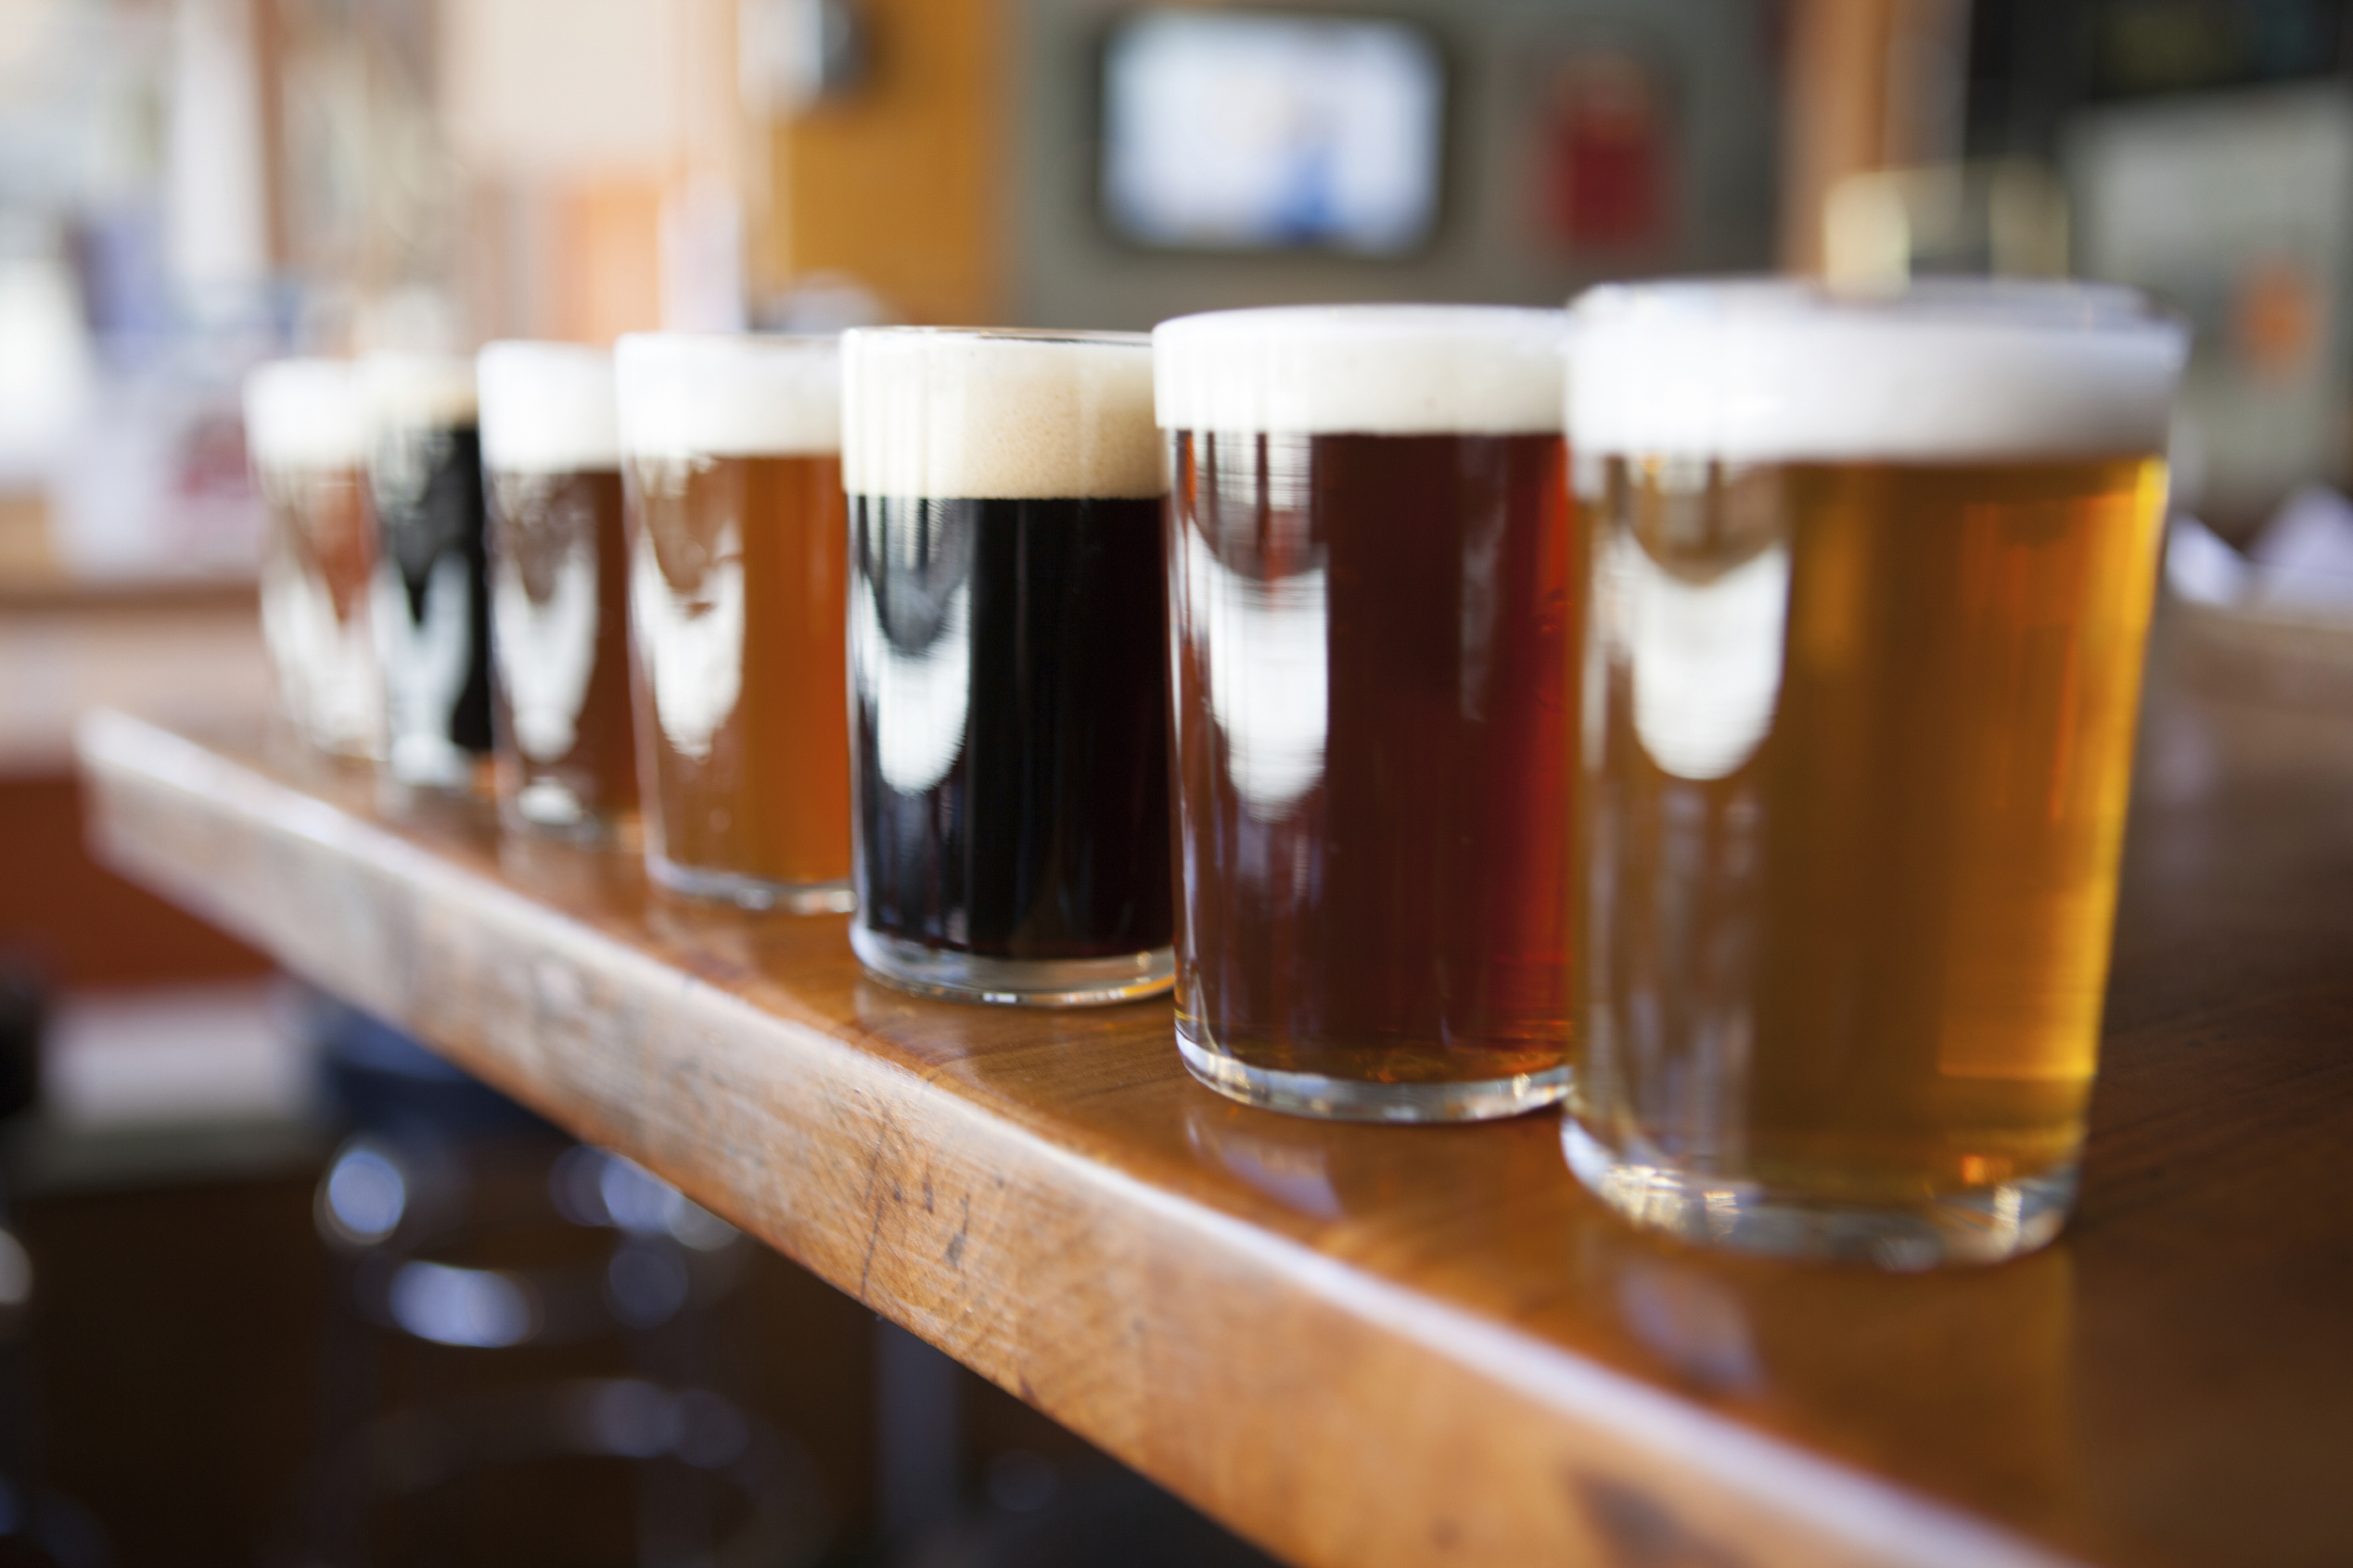 The Colorado craftbeer scene has quickly become a part of culture around Denver and surrounding communities. If you want to embrace this style of urban living up close you may want to grab hold of these quickly escalating areas like LoDo, RiNo District, Washington Park, Uptown, or Highland.